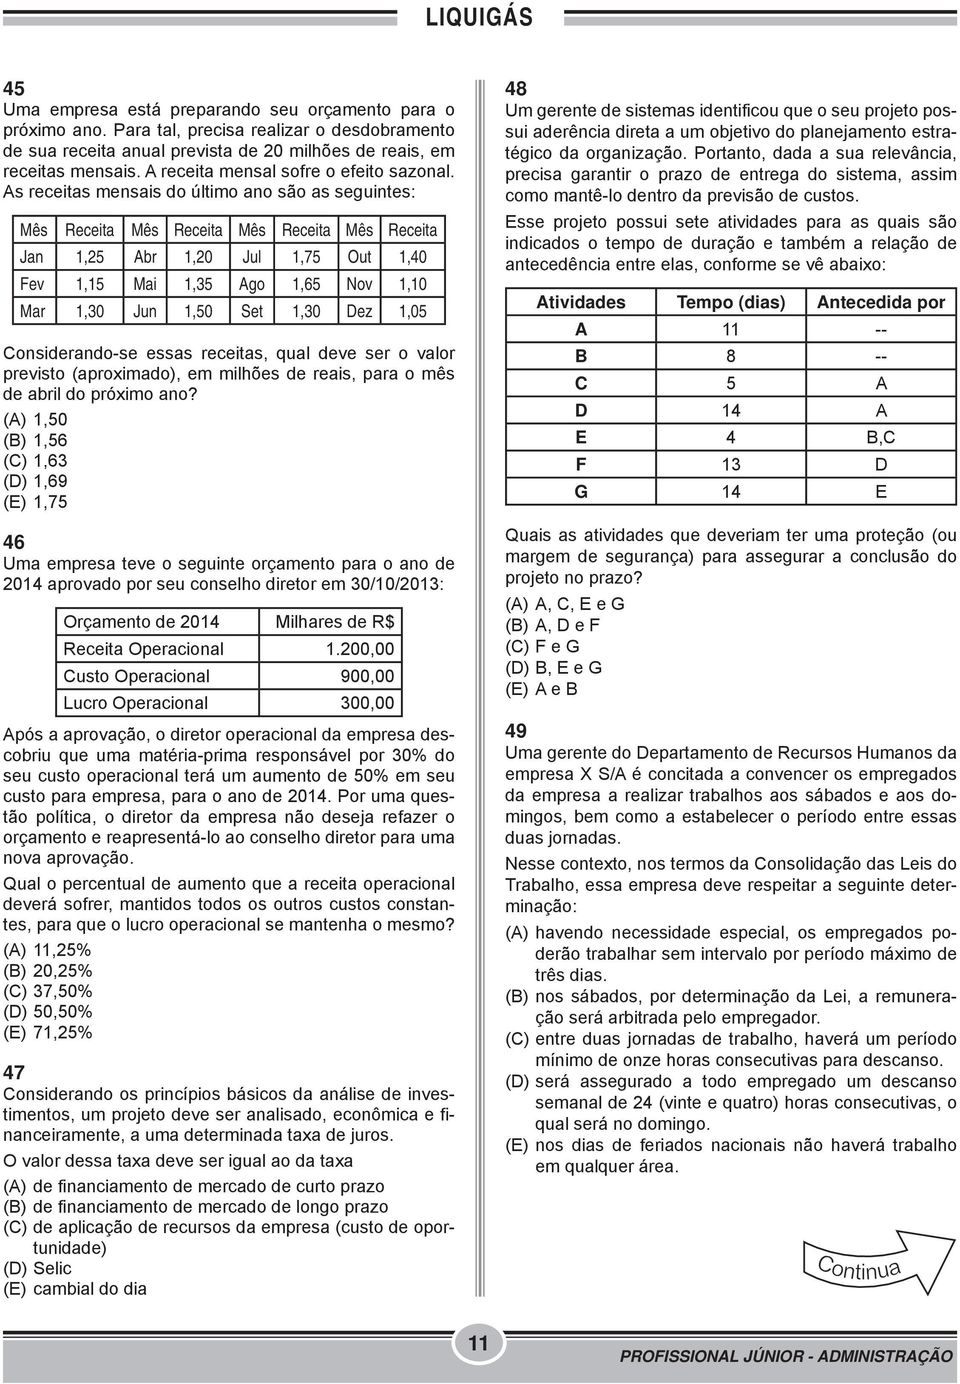 As receitas mensais do último ano são as seguintes: Mês Receita Mês Receita Mês Receita Mês Receita Jan 1,25 Abr 1,20 Jul 1,75 Out 1,40 Fev 1,15 Mai 1,35 Ago 1,65 Nov 1,10 Mar 1,30 Jun 1,50 Set 1,30